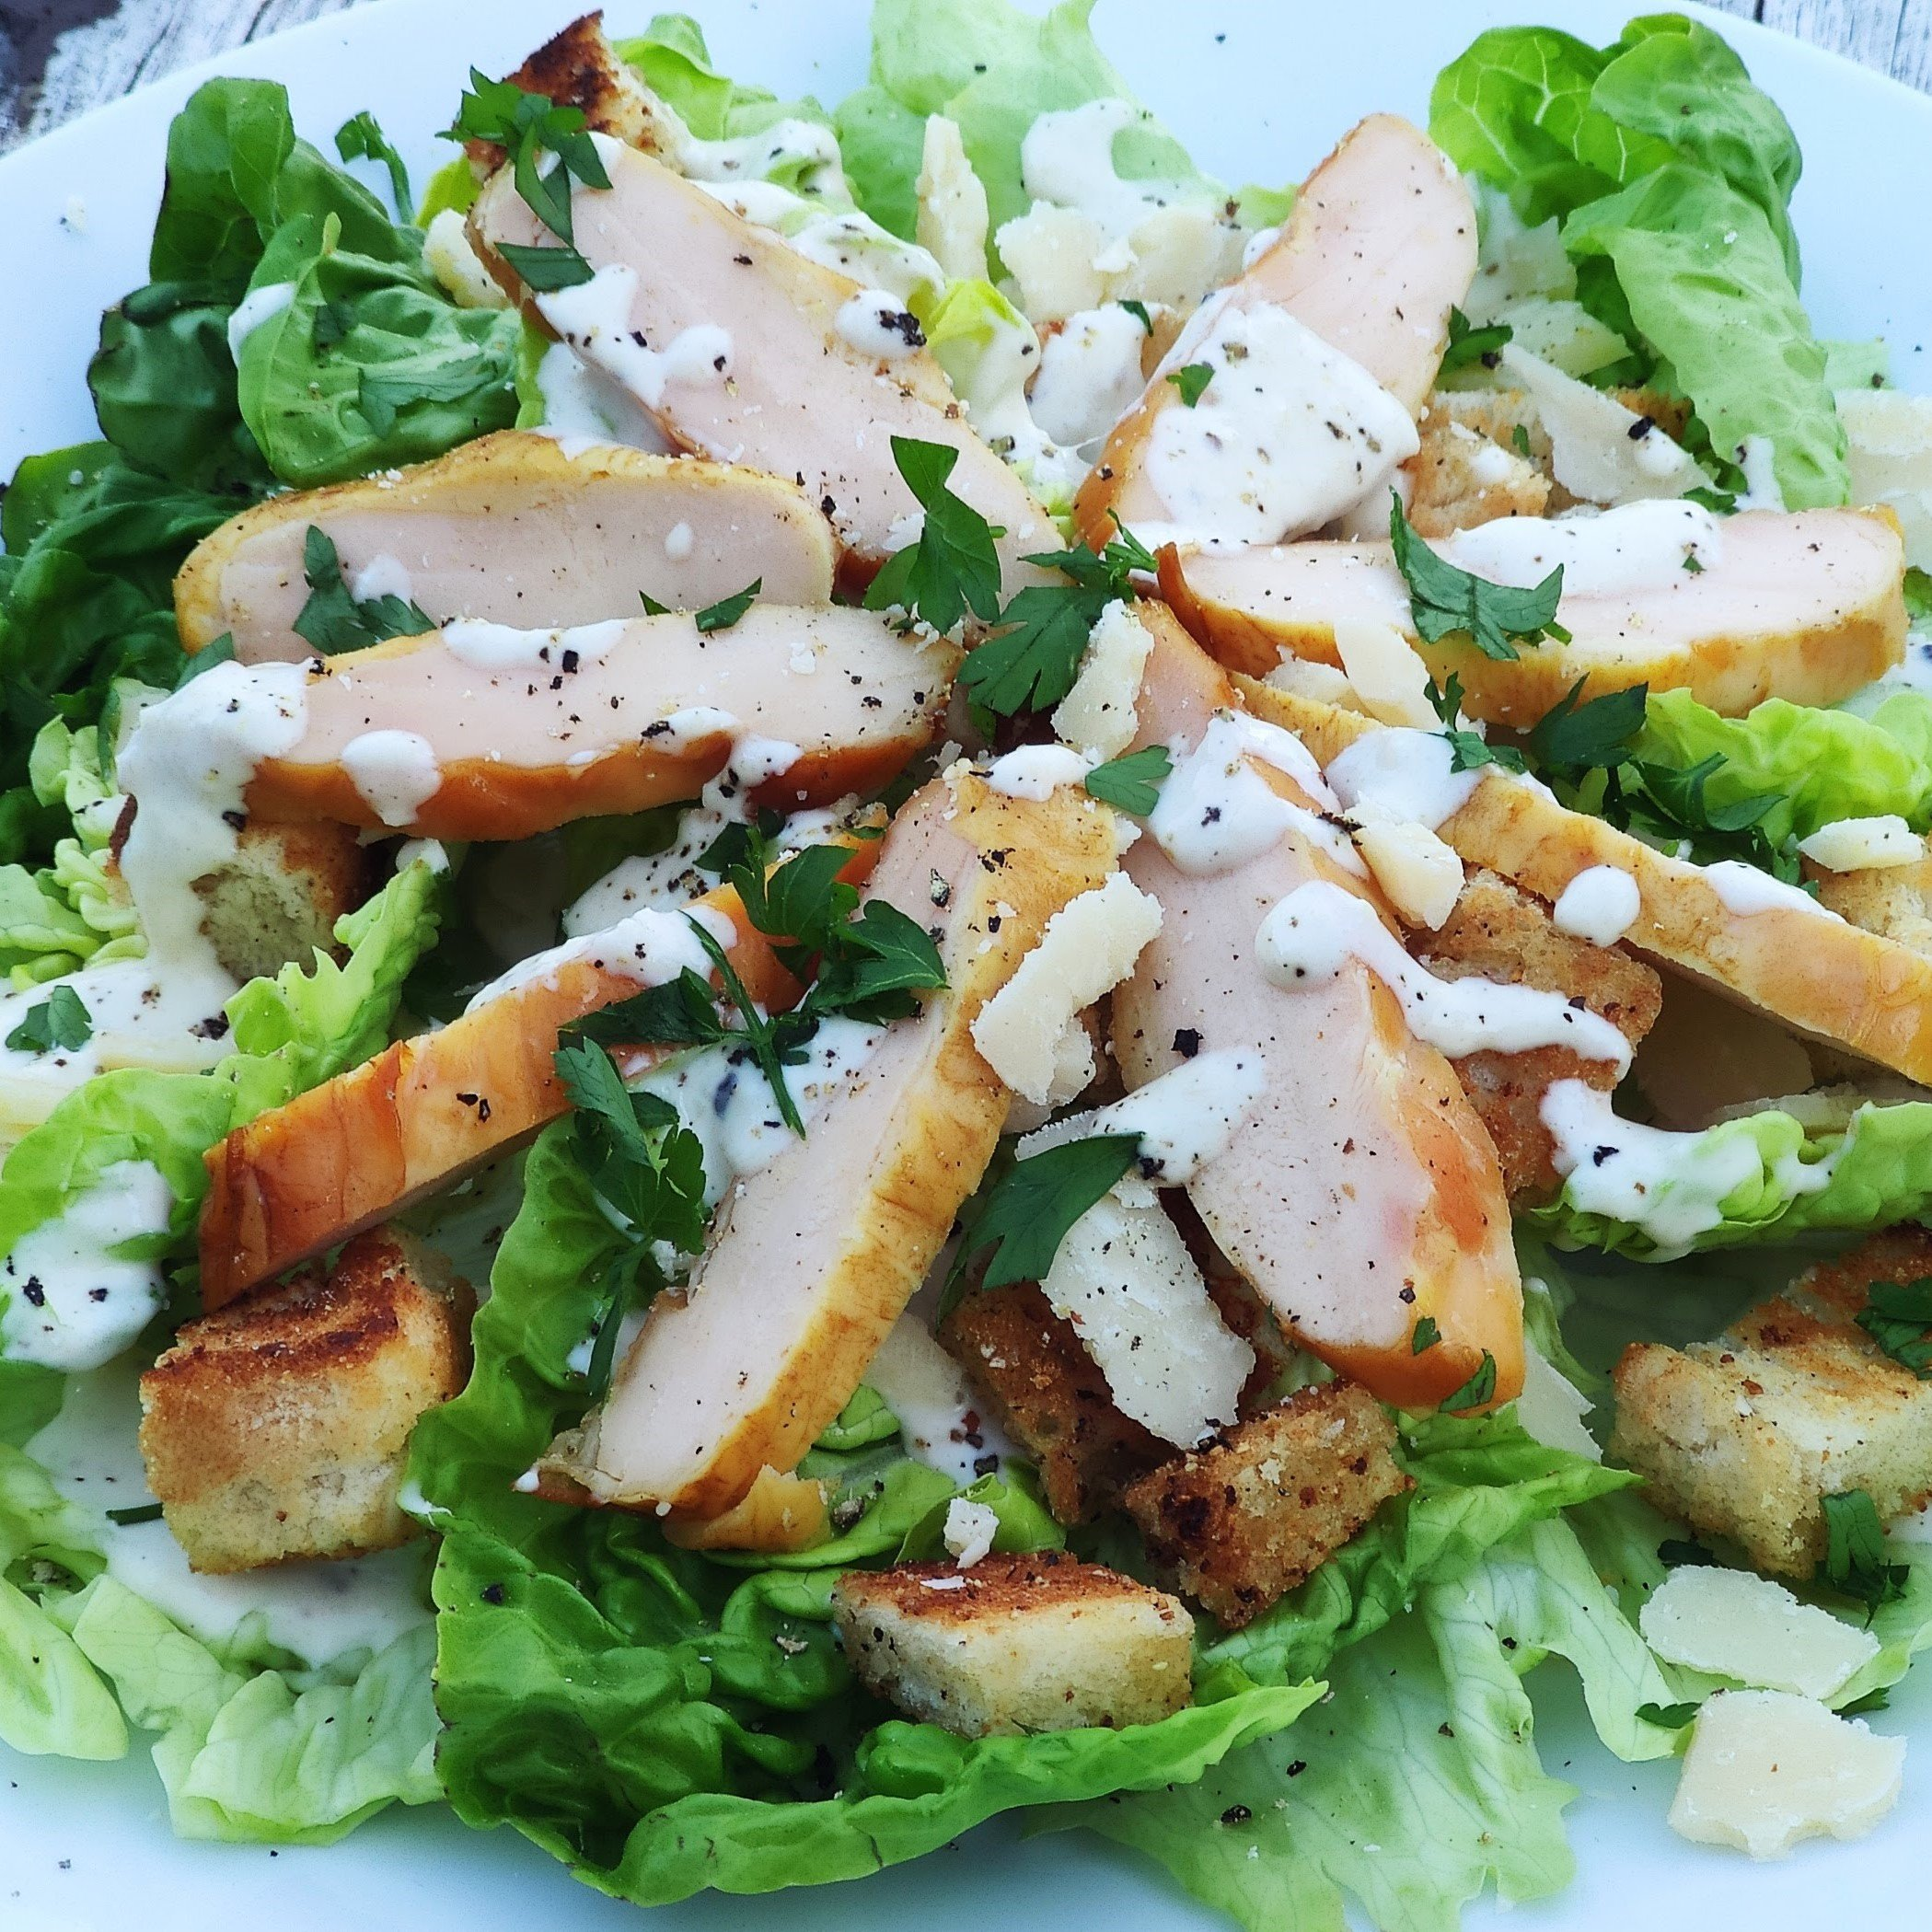 Cesar's salad with Smoked Chicken Breast